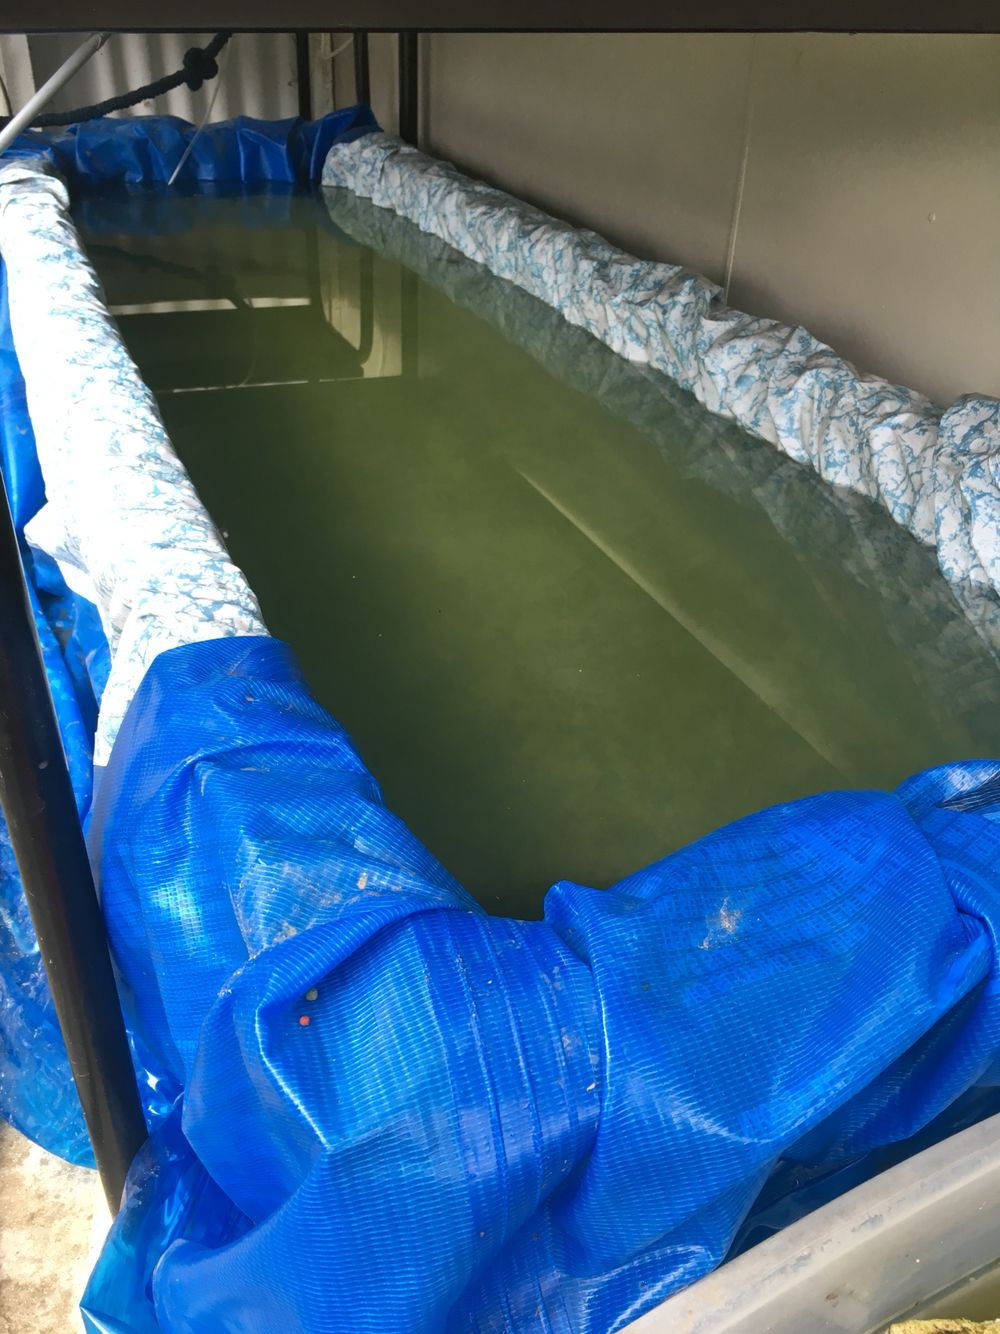 Filled with water and goldfish aquaponics hydroponics